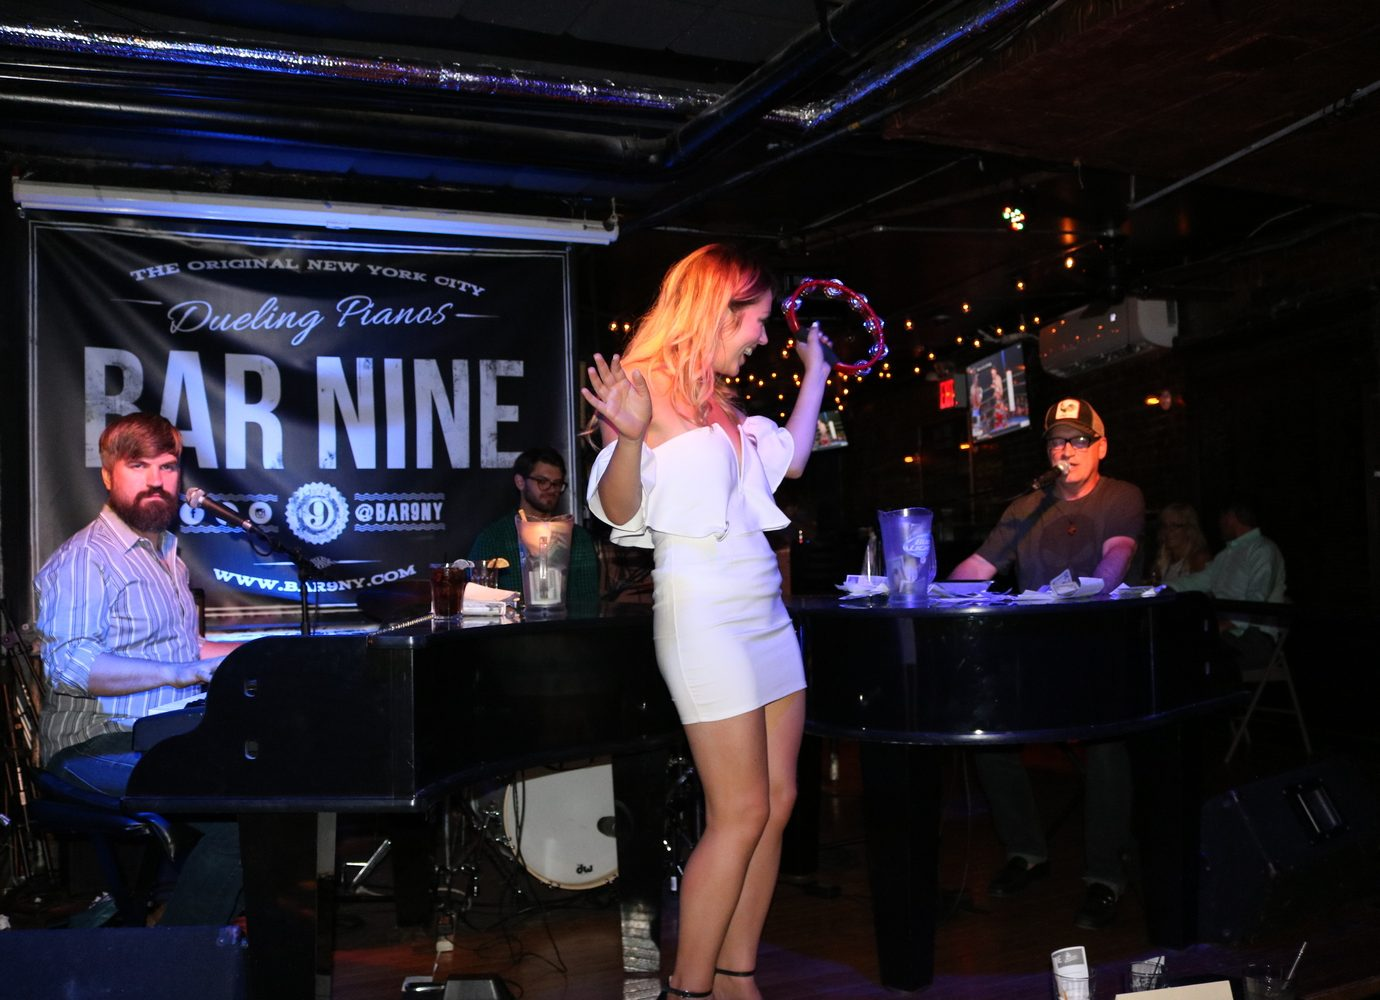 live music at Bar Nine in NYC